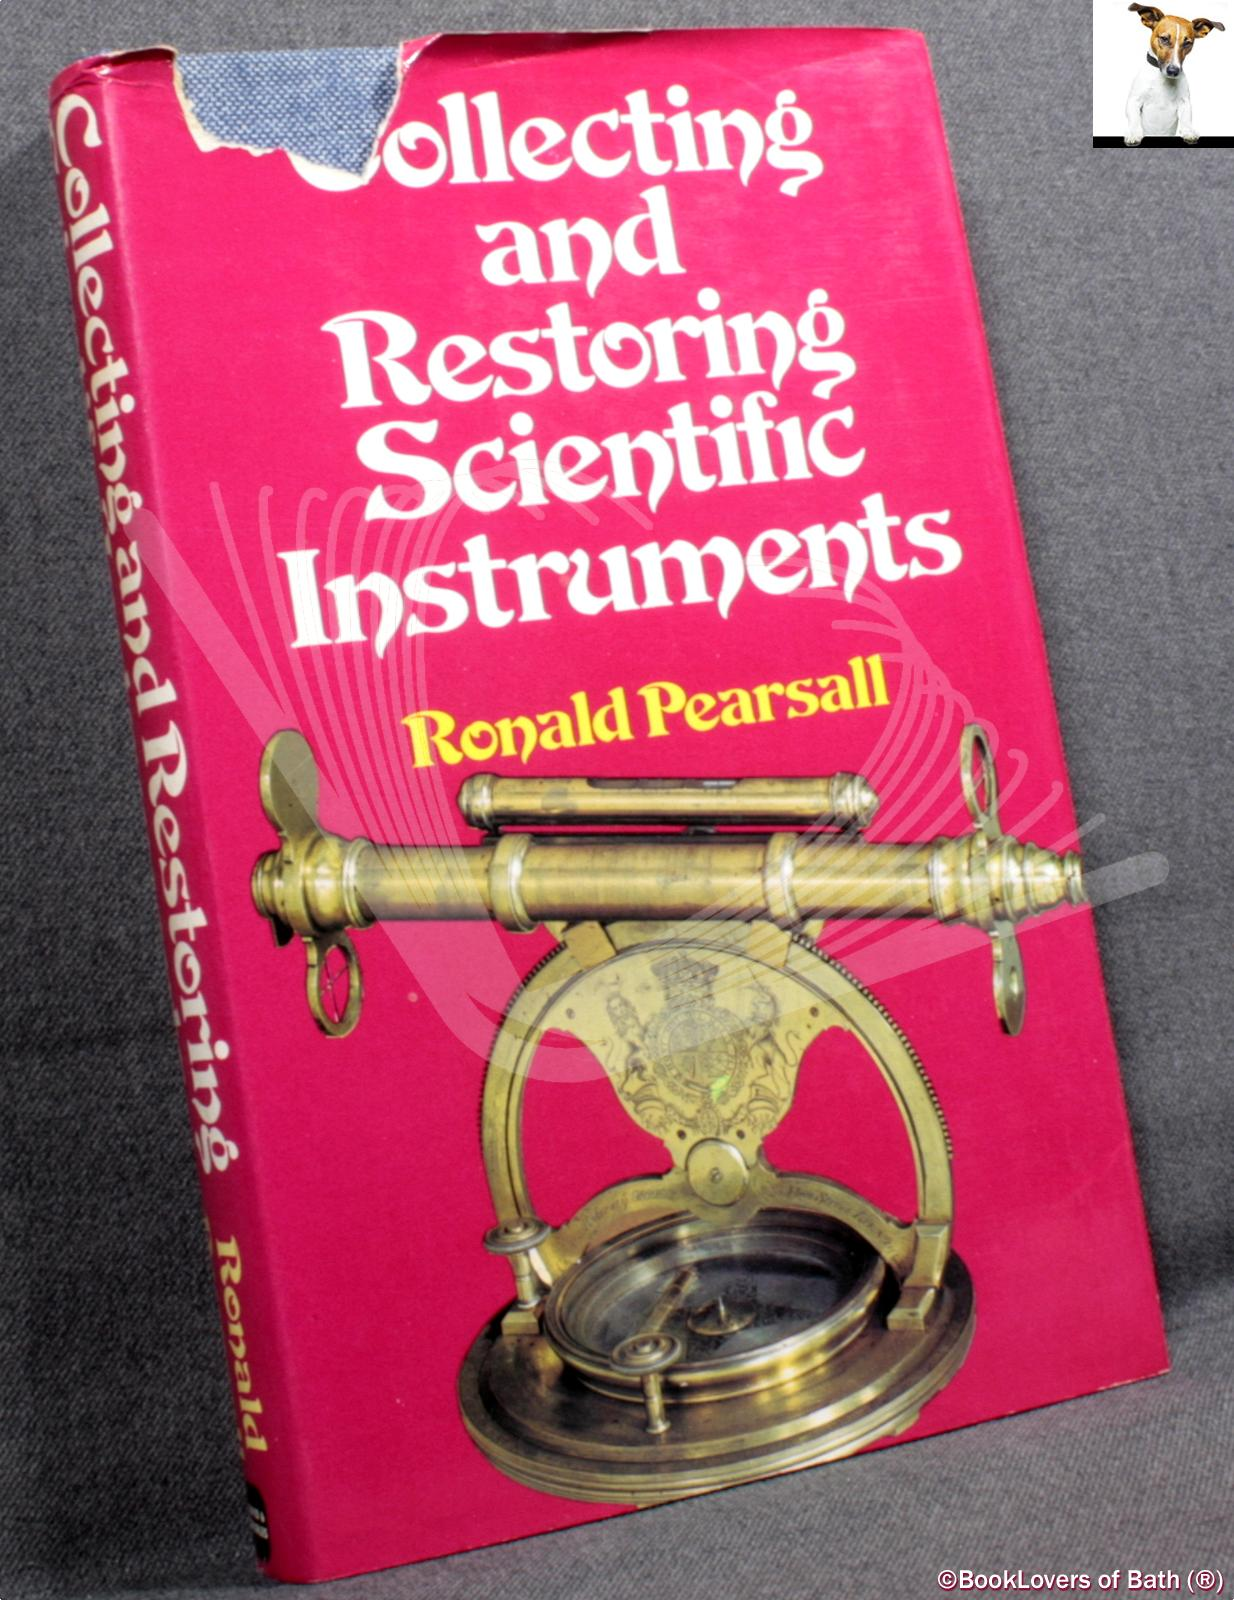 Collecting and Restoring Scientific Instruments - Ronald Pearsall